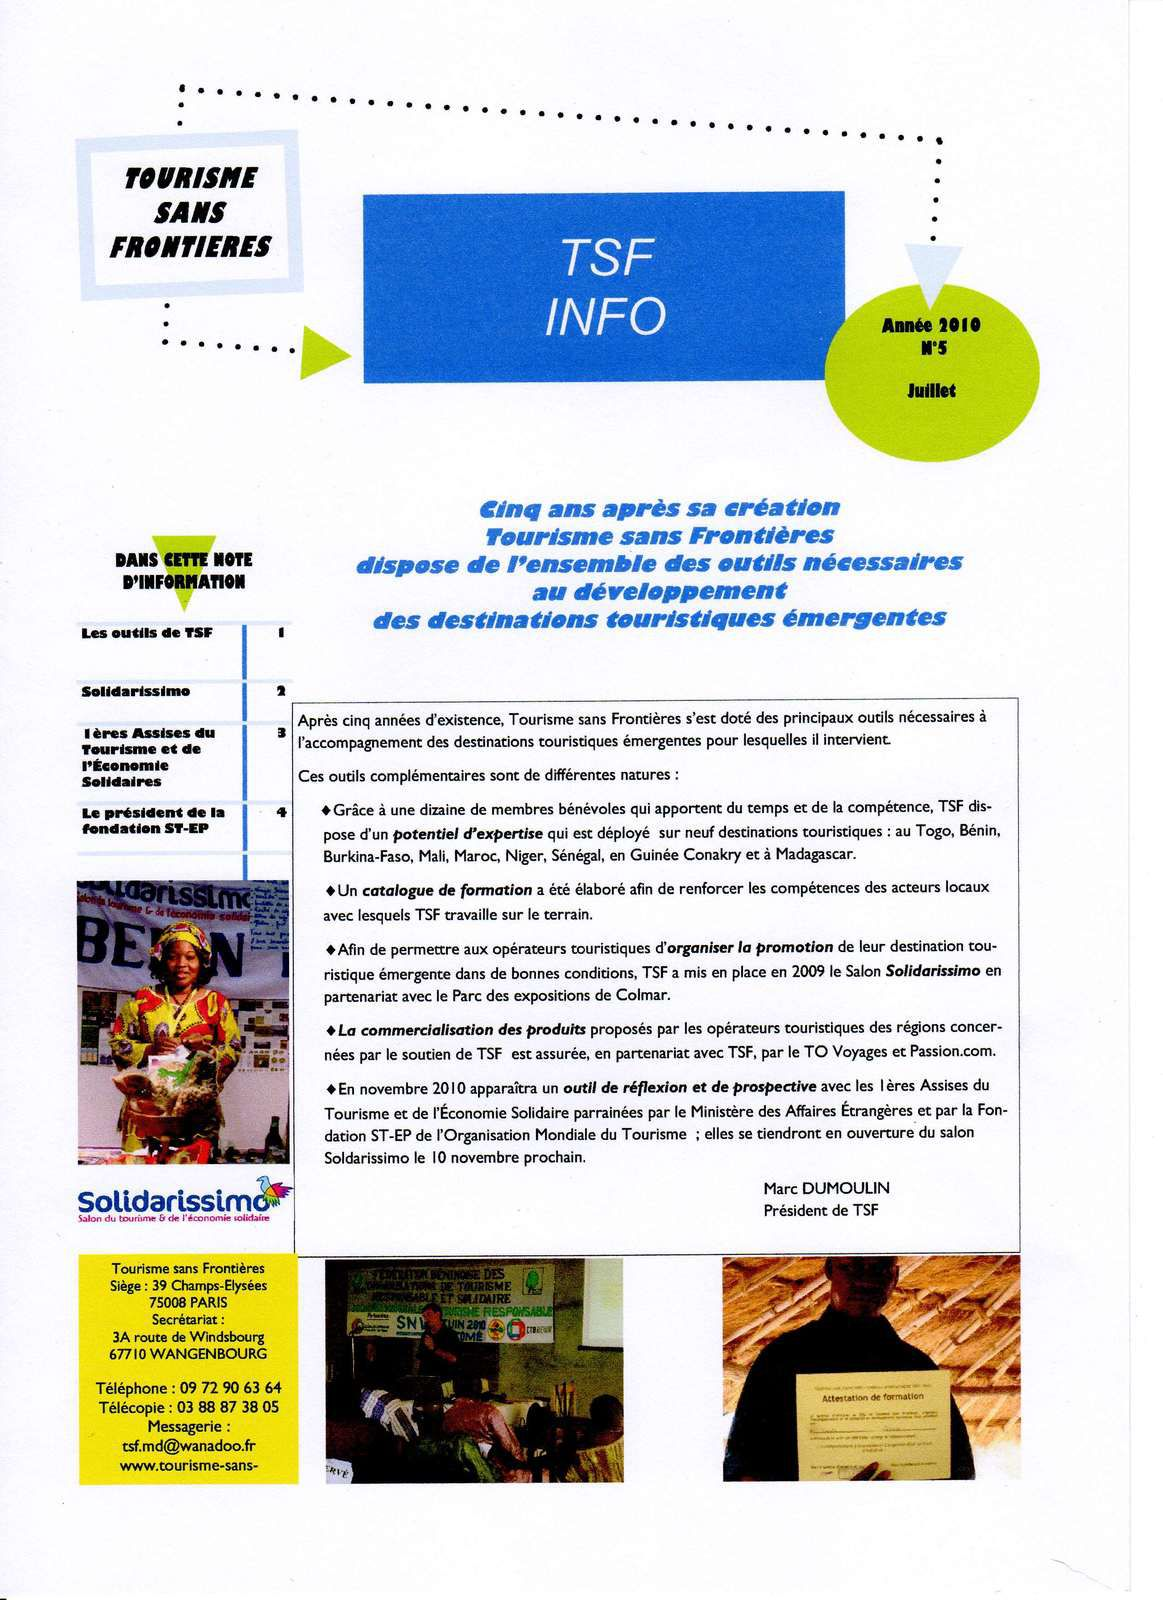 Les publications